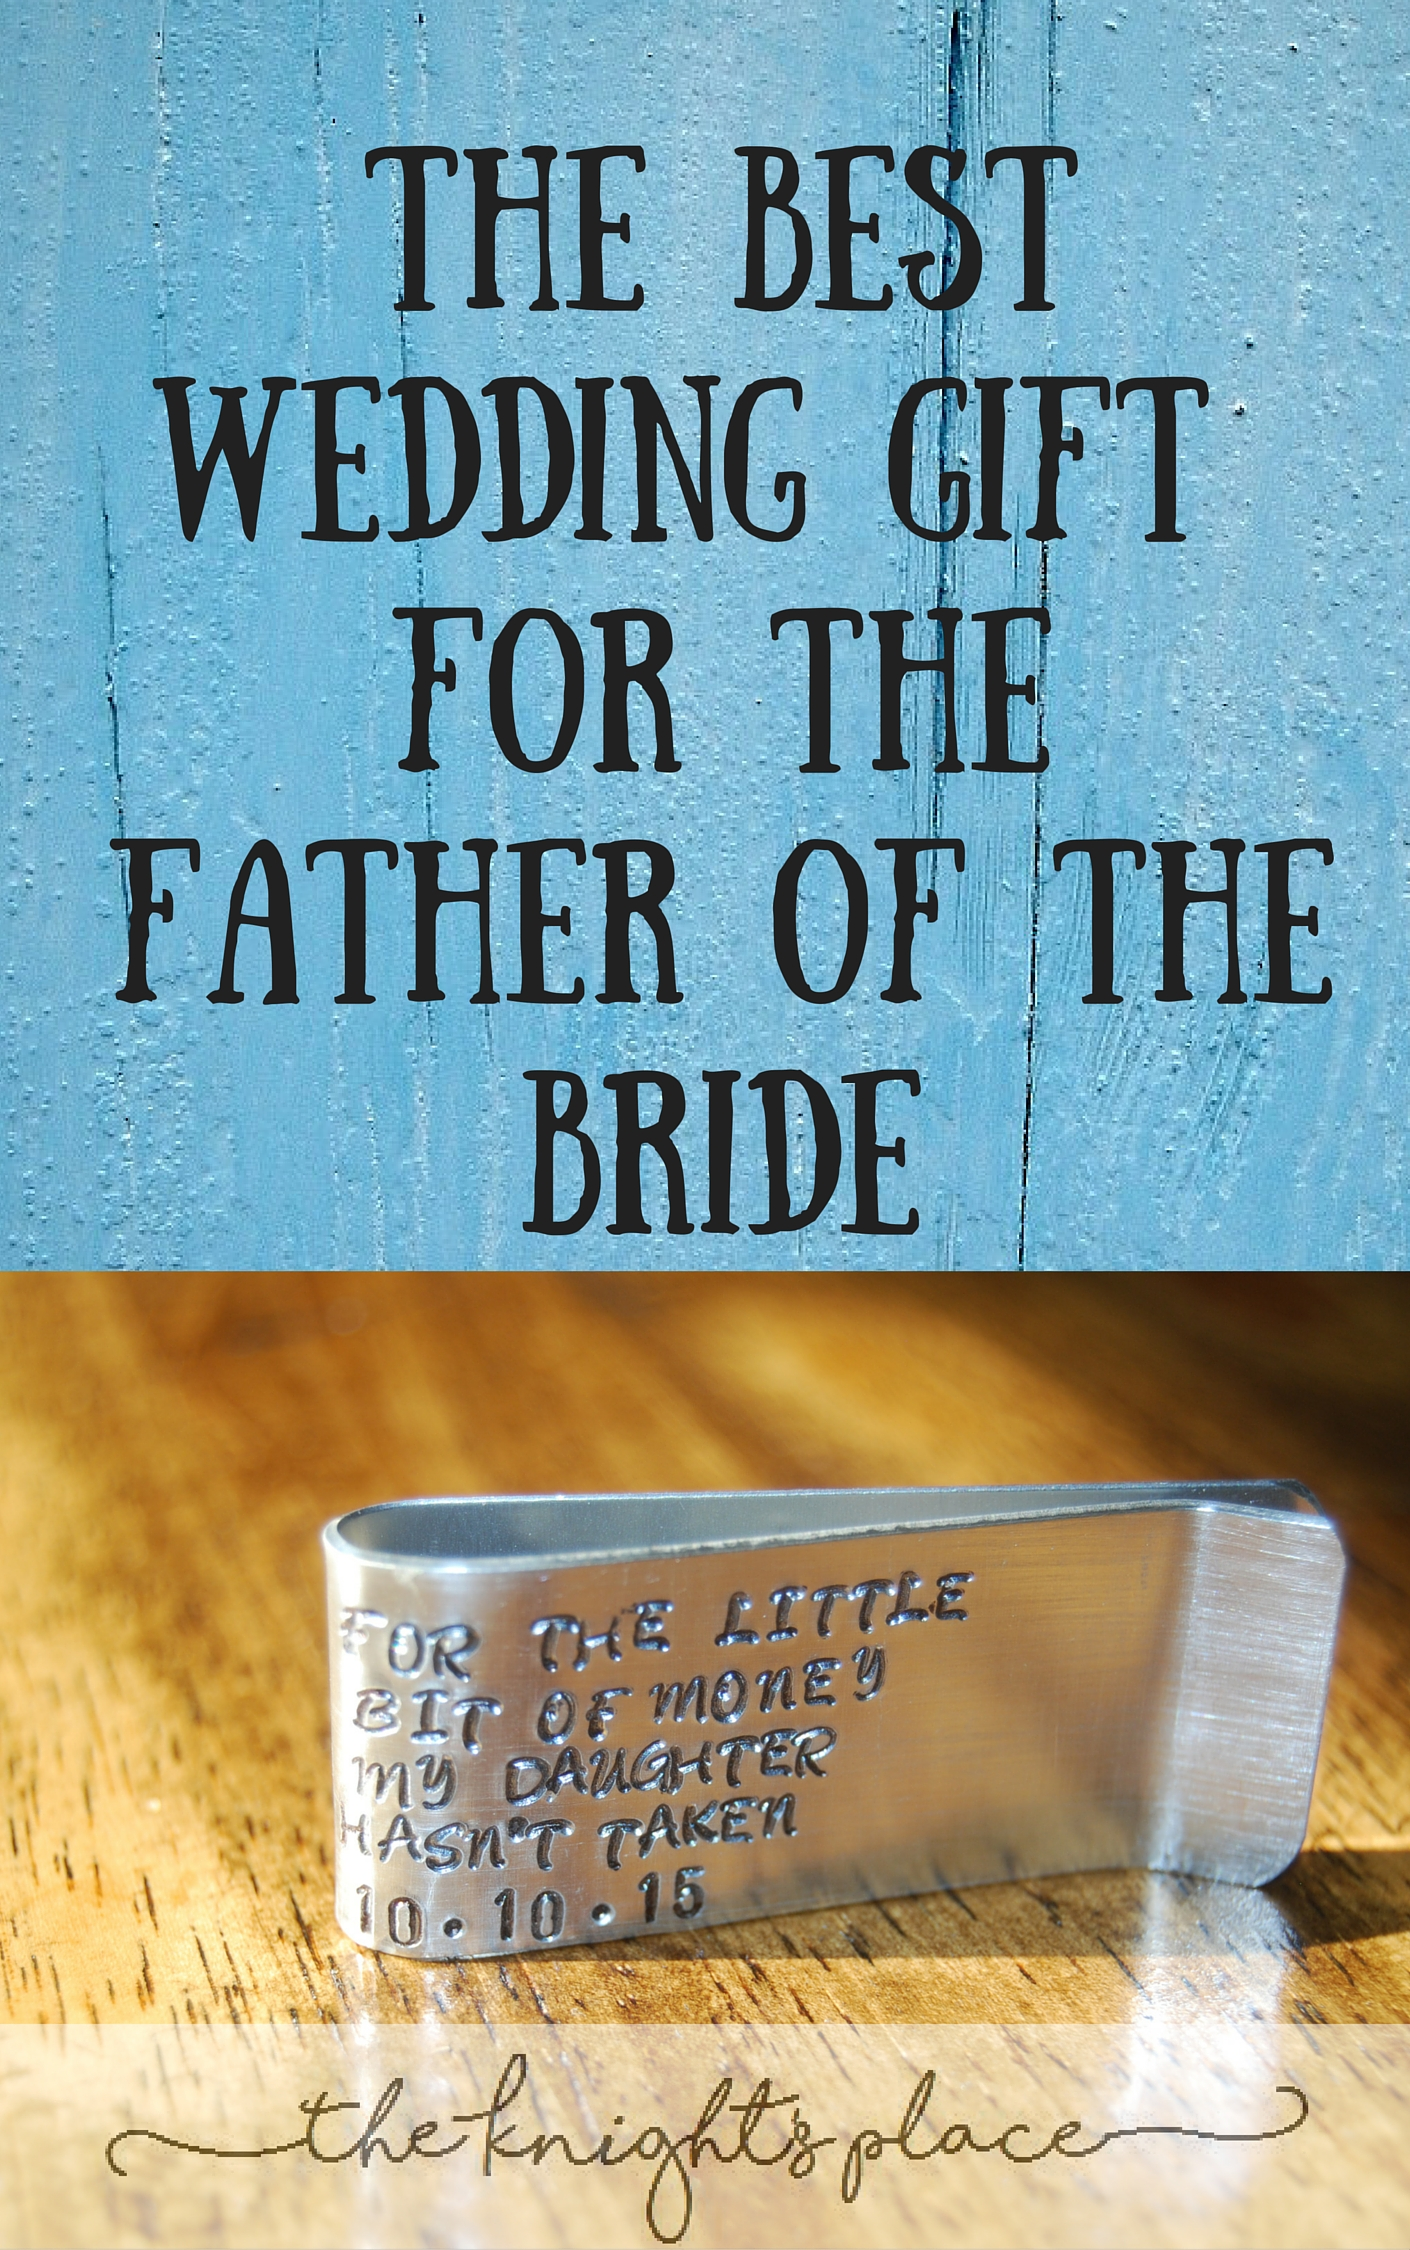 The Best Gift For The Father Of The Bride - The Knight's Place